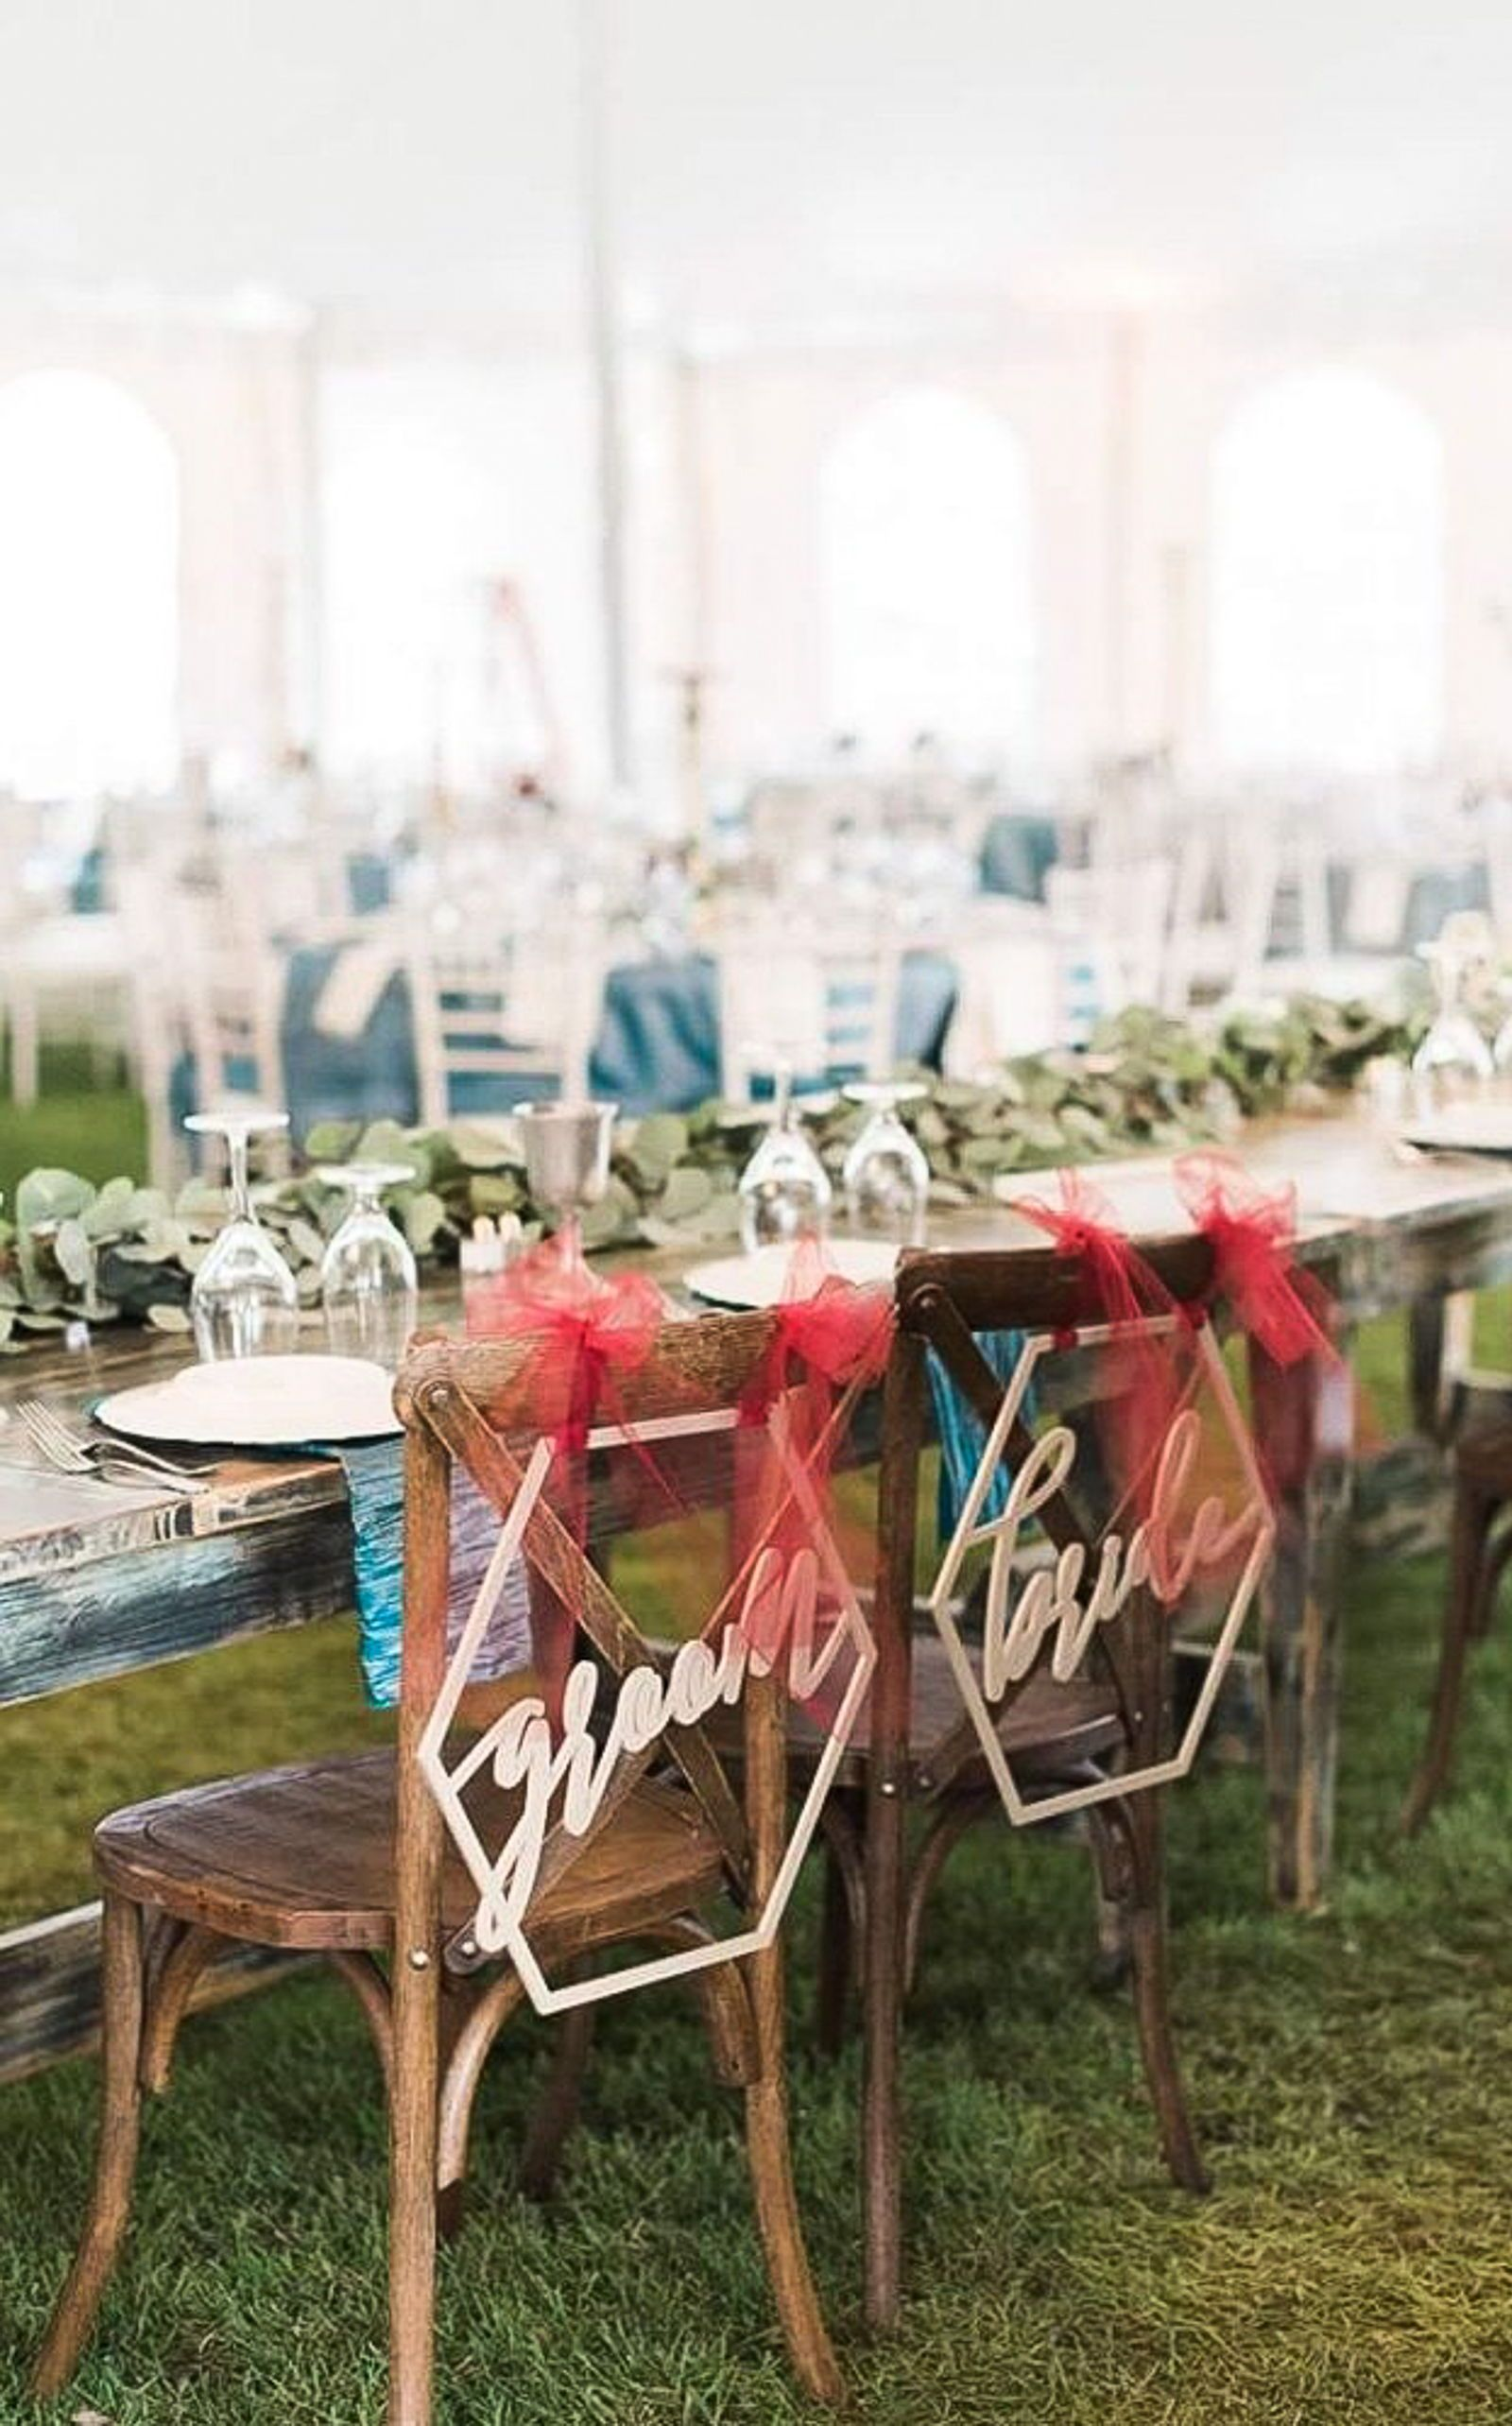 Tremendous Hexagon Wedding Chair Signs Geometric Style For Bride And Pdpeps Interior Chair Design Pdpepsorg